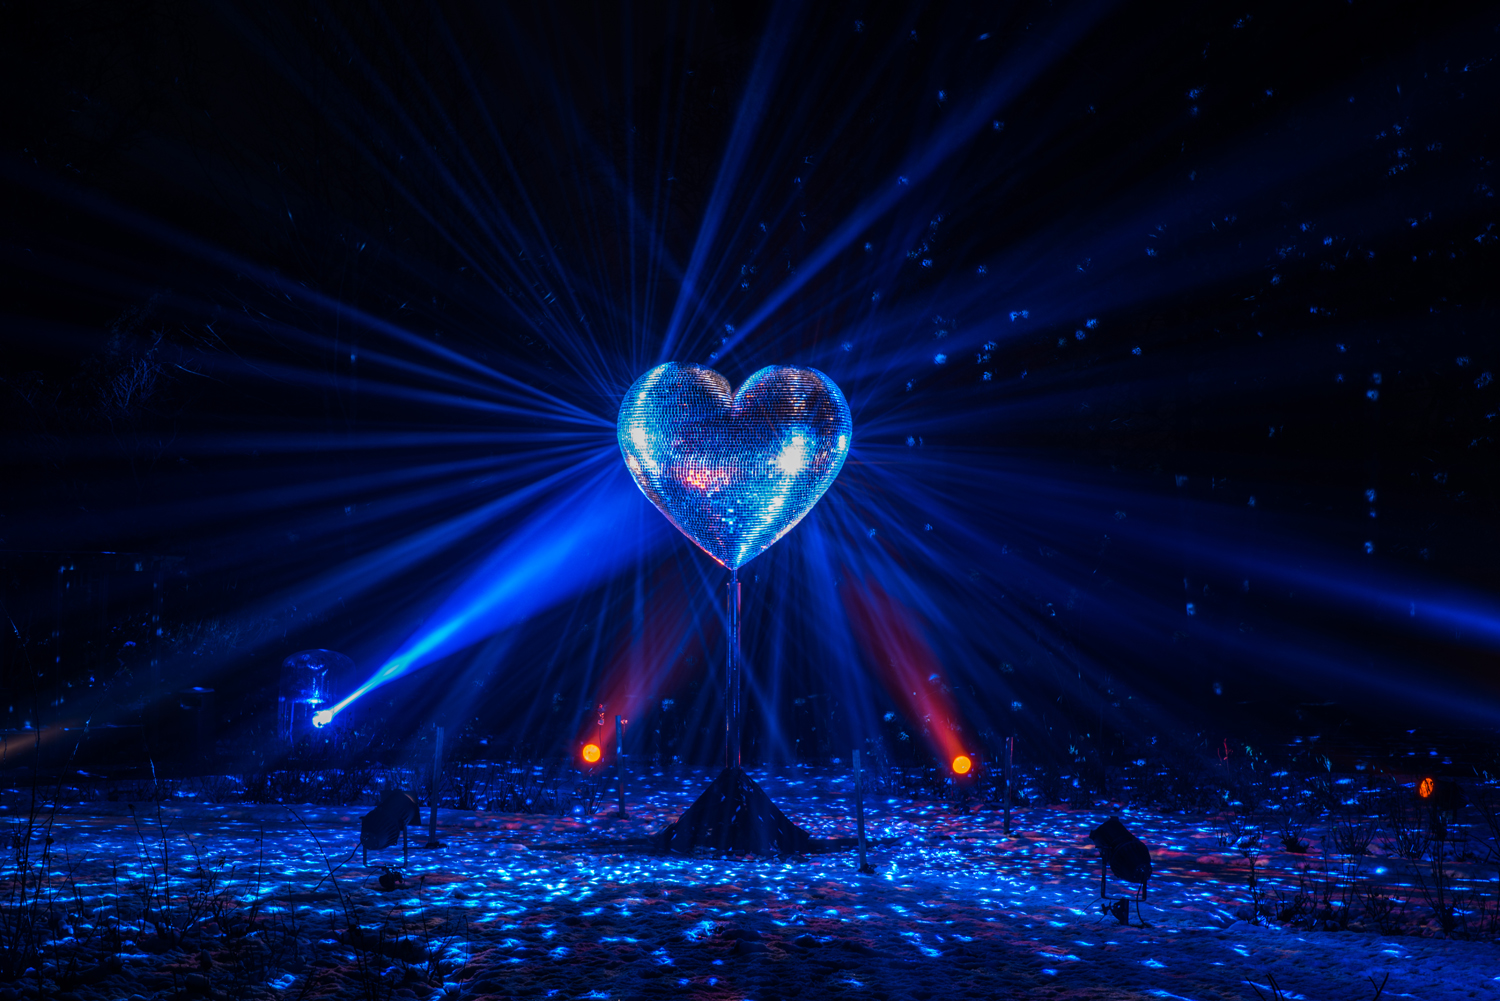 Light reflects off the heart-shaped mirror ball for Our Beating Heart